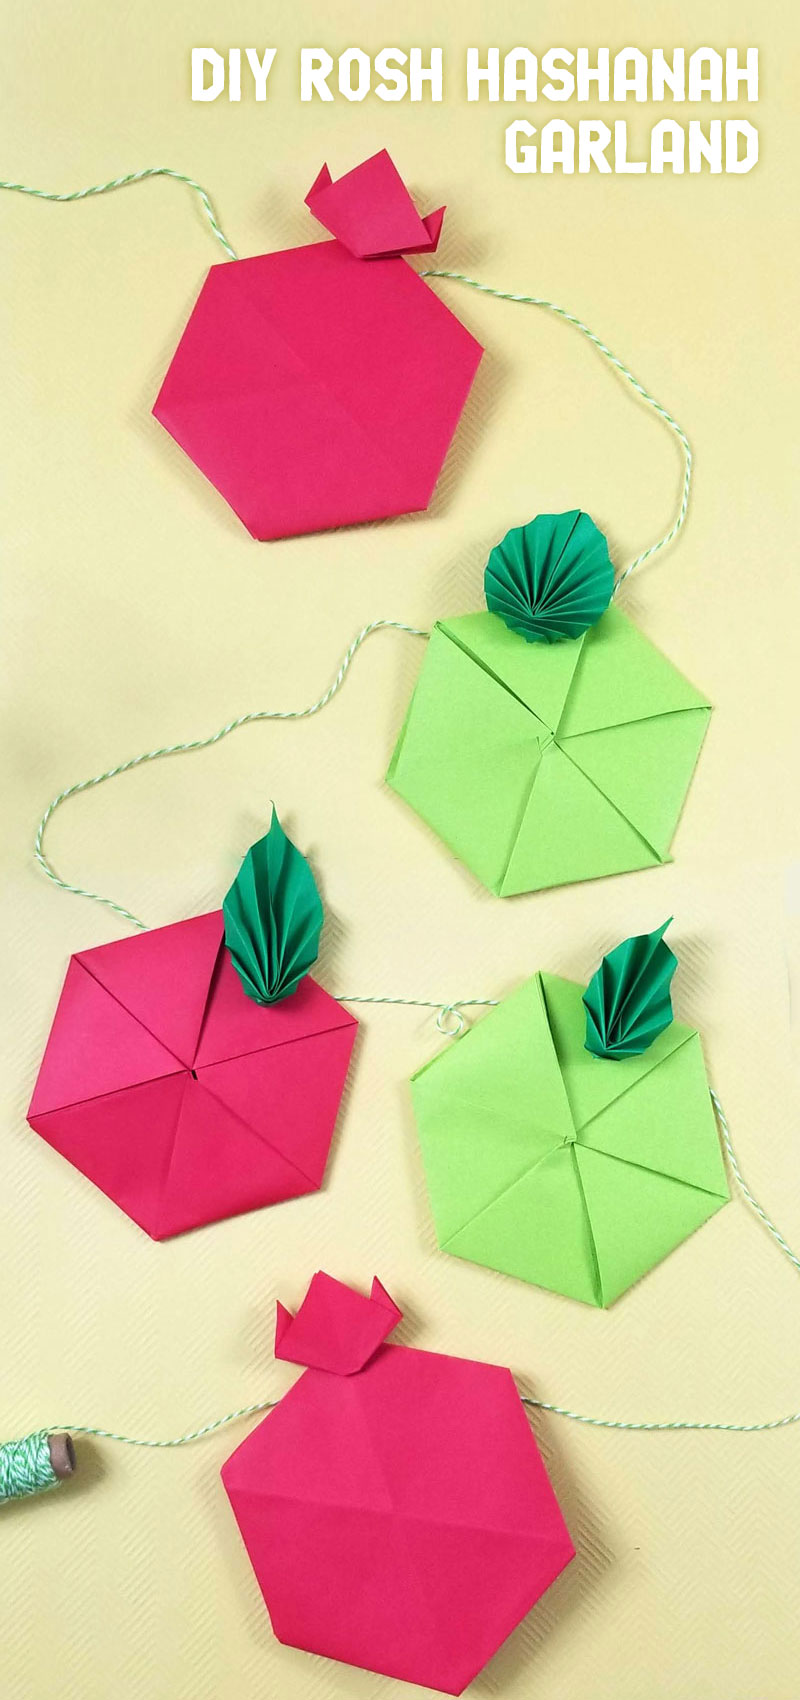 Make your own origami pomegranates and a fun Rosh Hashanah craft for kids and adults! Crafts for the High Holidays and Jewish new year can be hard to come by but this easy paper craft can double as fun home decor for the holidays